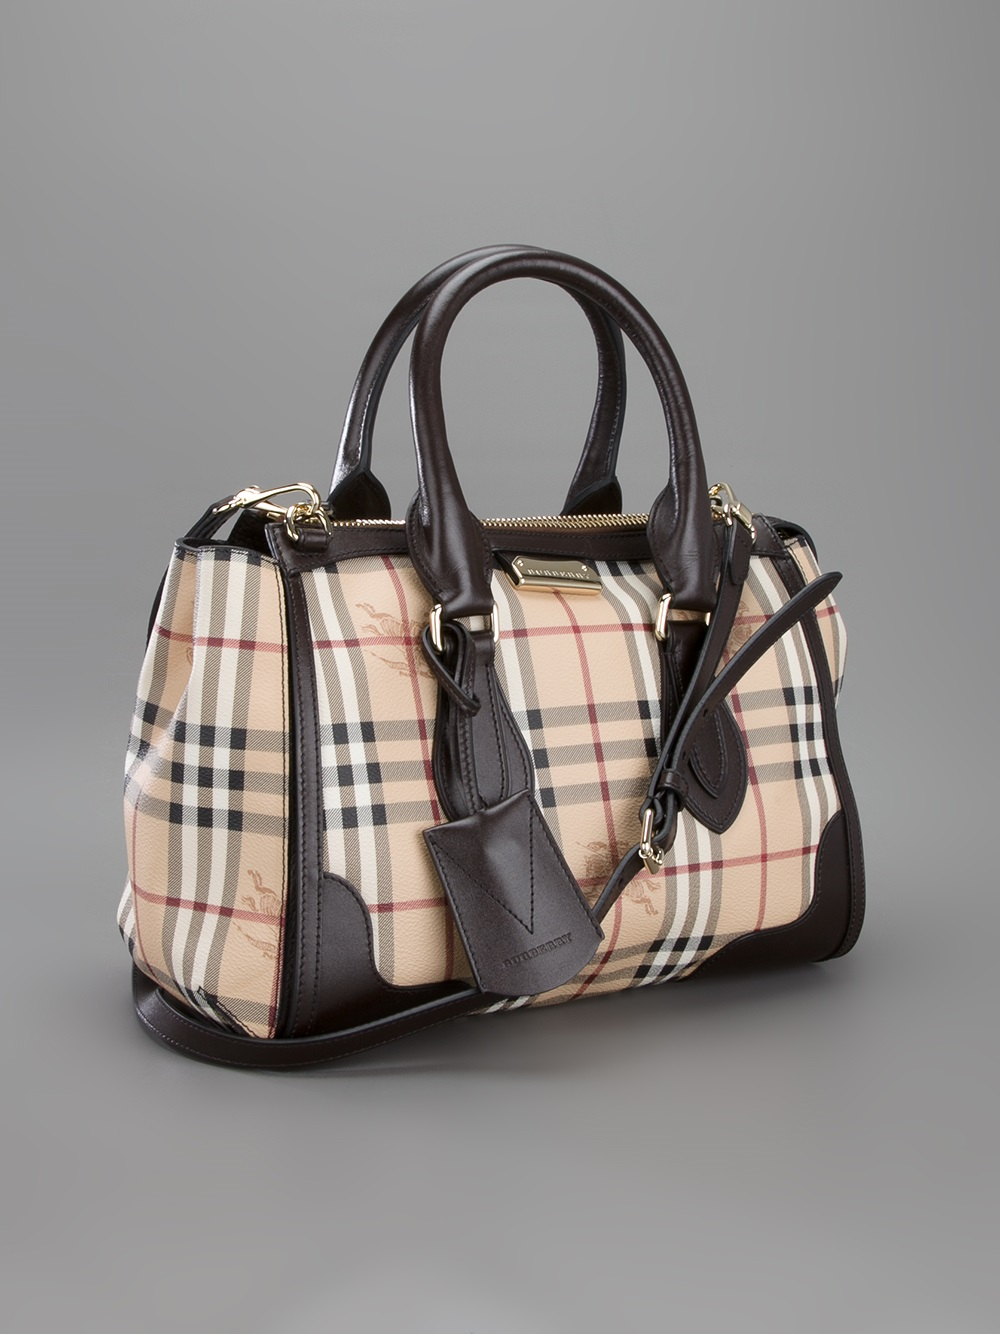 33120b329d88 Lyst - Burberry Prorsum Small Gladstone Tote in Natural